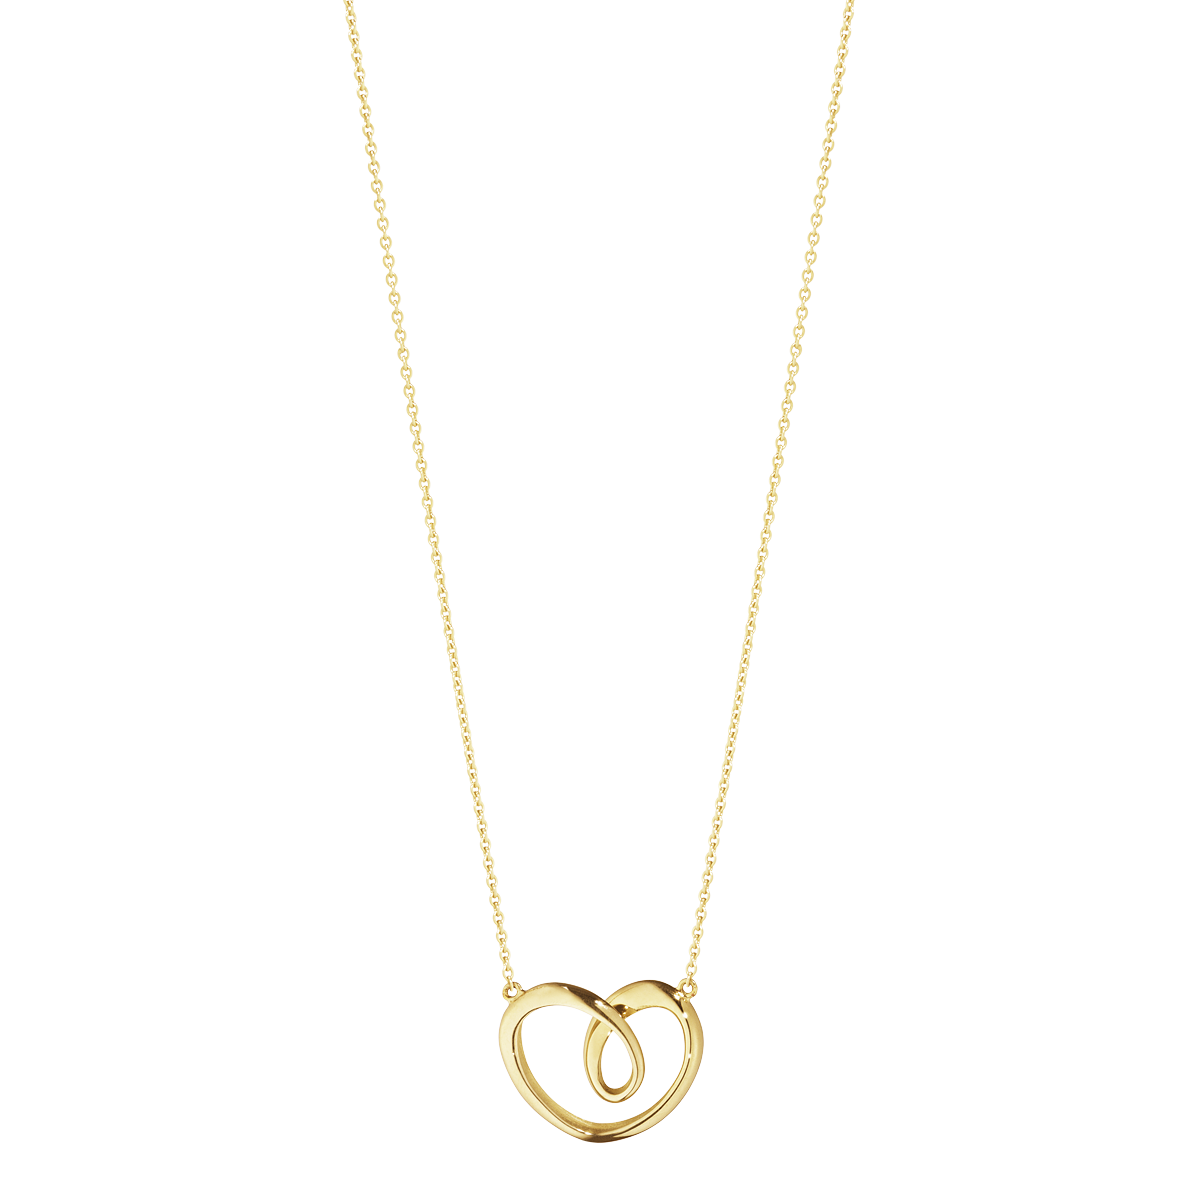 Georg Jensen 18ct Yellow Gold Heart Pendant